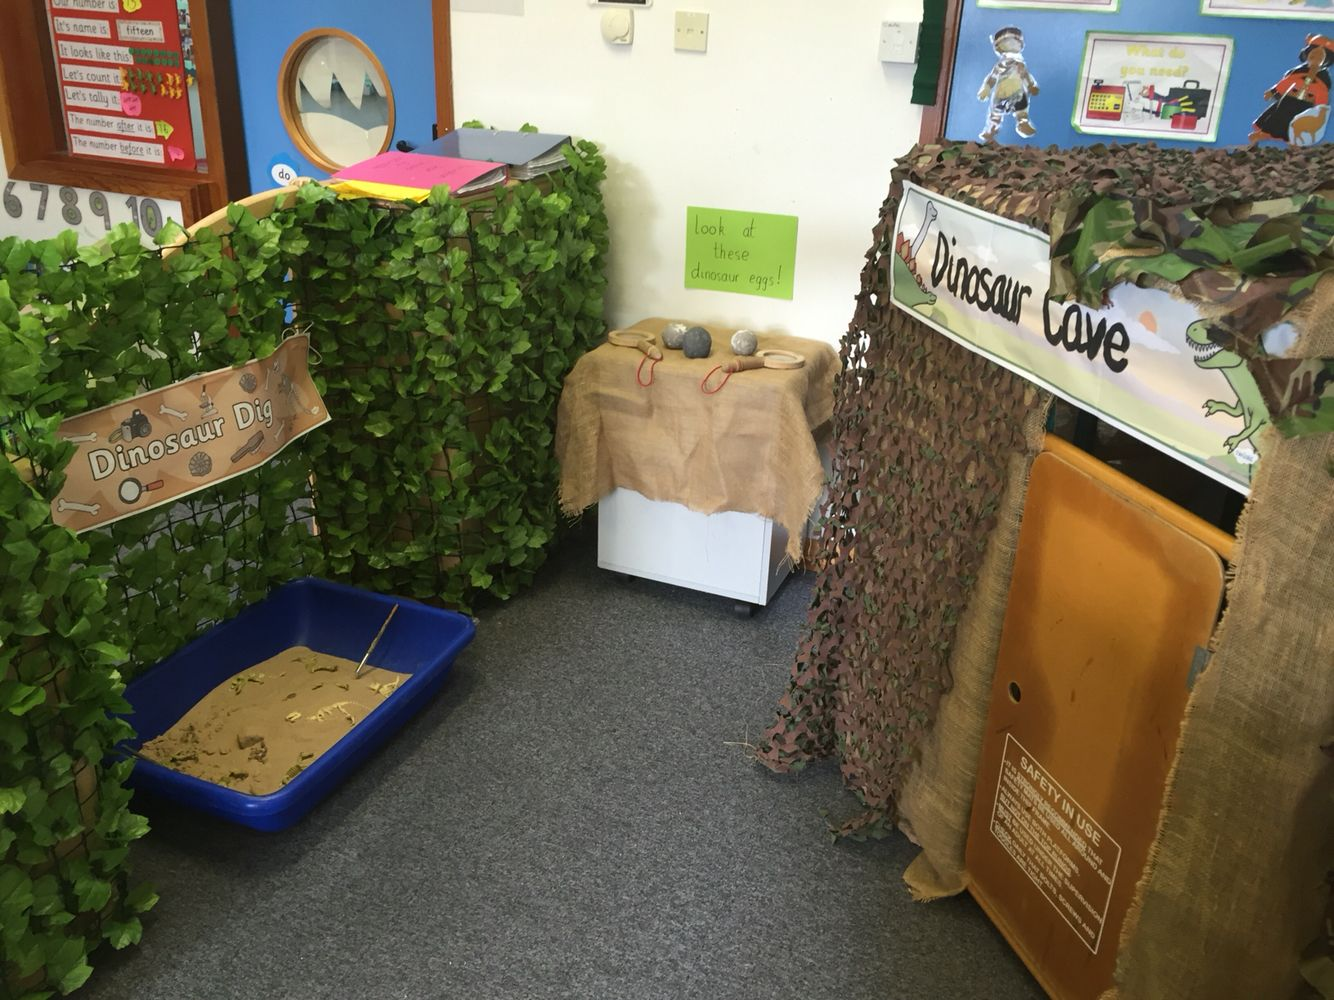 dinosaur cave role play area role play areas